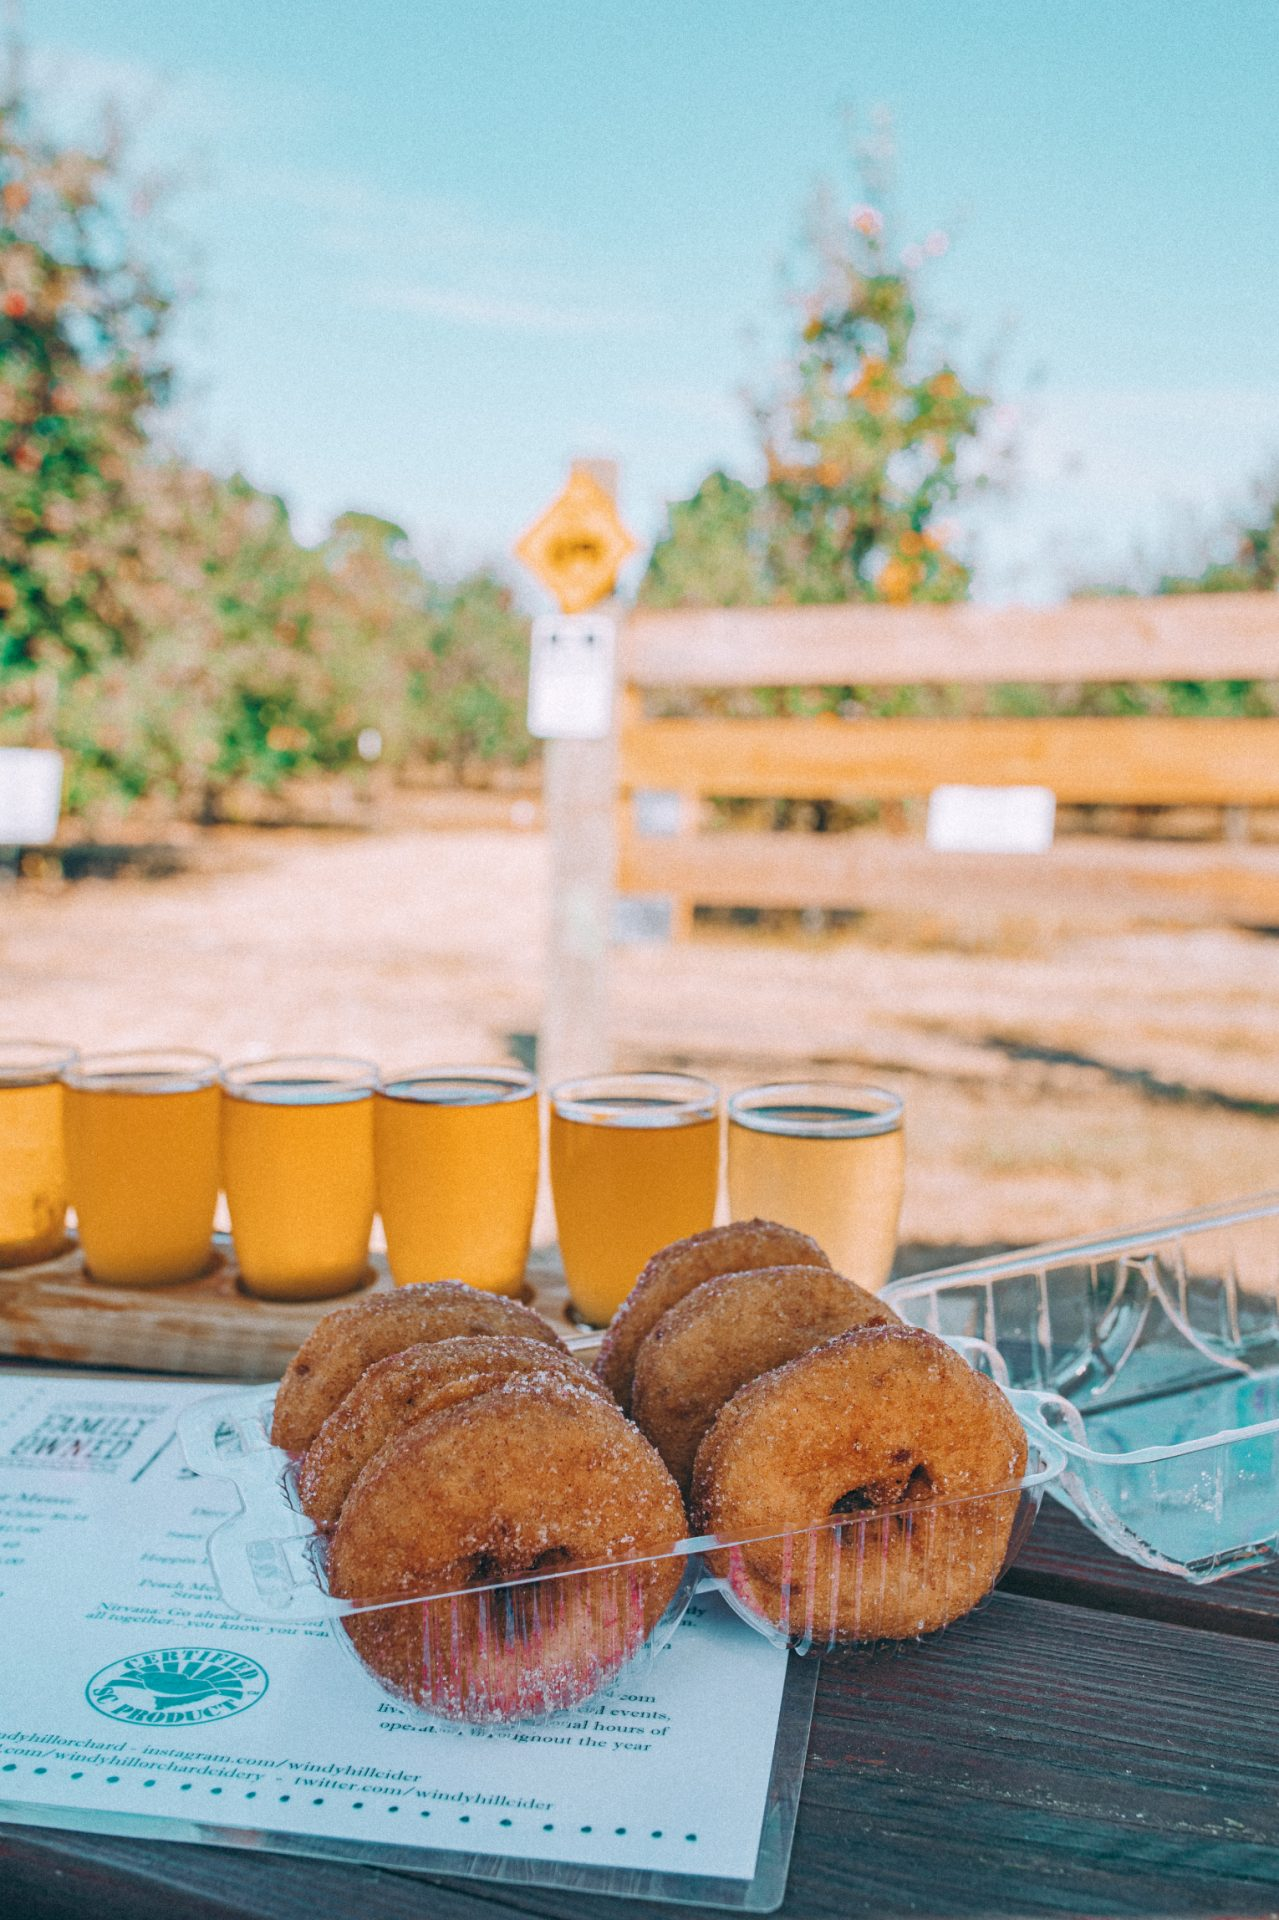 York South Carolina, York, sc, windy hill orchard, fort mill, south Carolina, Charlotte, apple orchard in Charlotte, apple cider, hard cider, apple cider donuts, fresh donuts, farm, pumpkin patch,